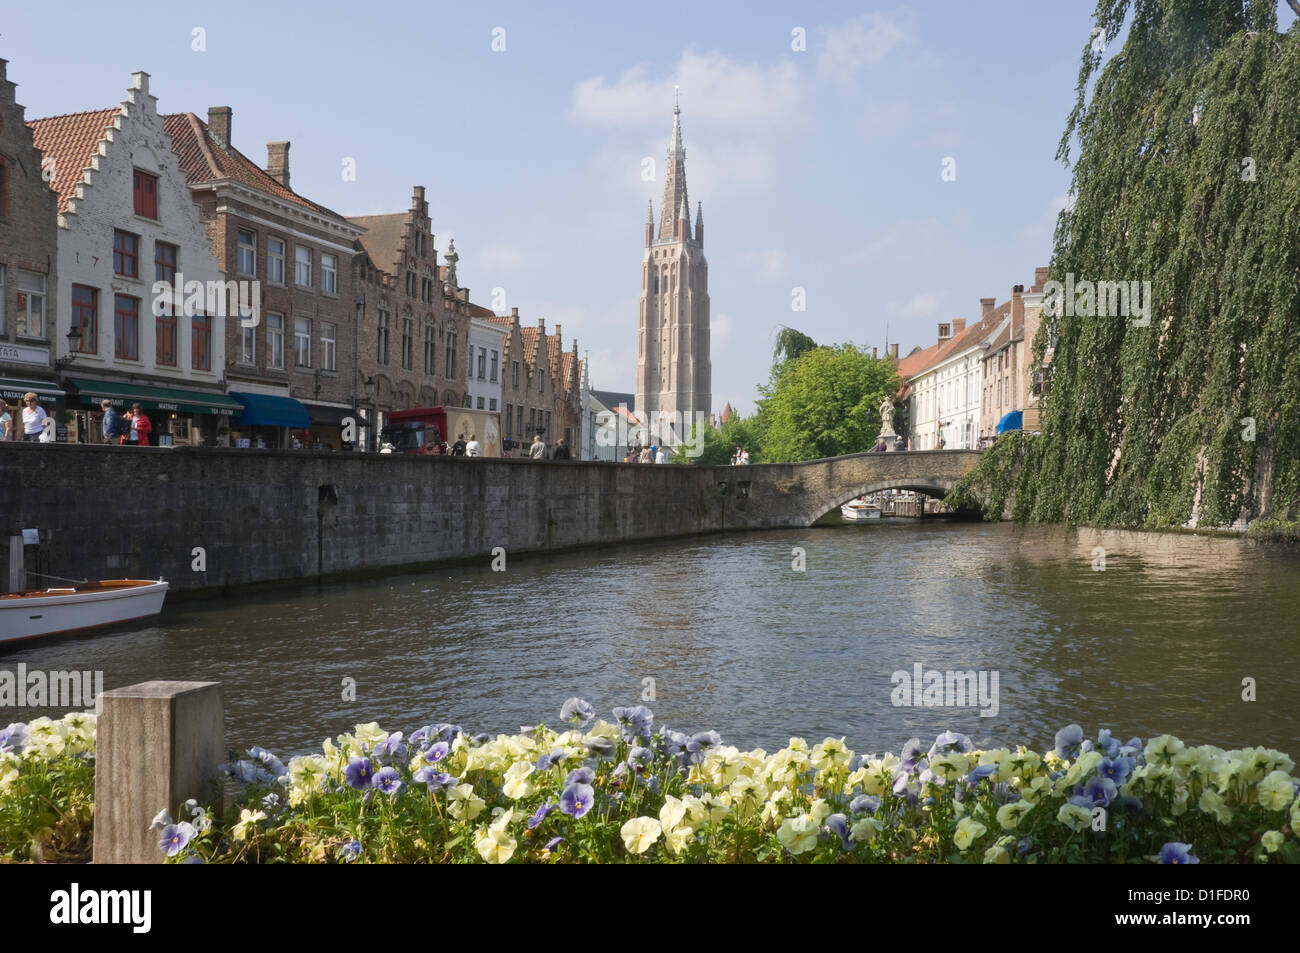 Canal view with the spire of the Church of our Lady, Brugge, Belgium, Europe - Stock Image